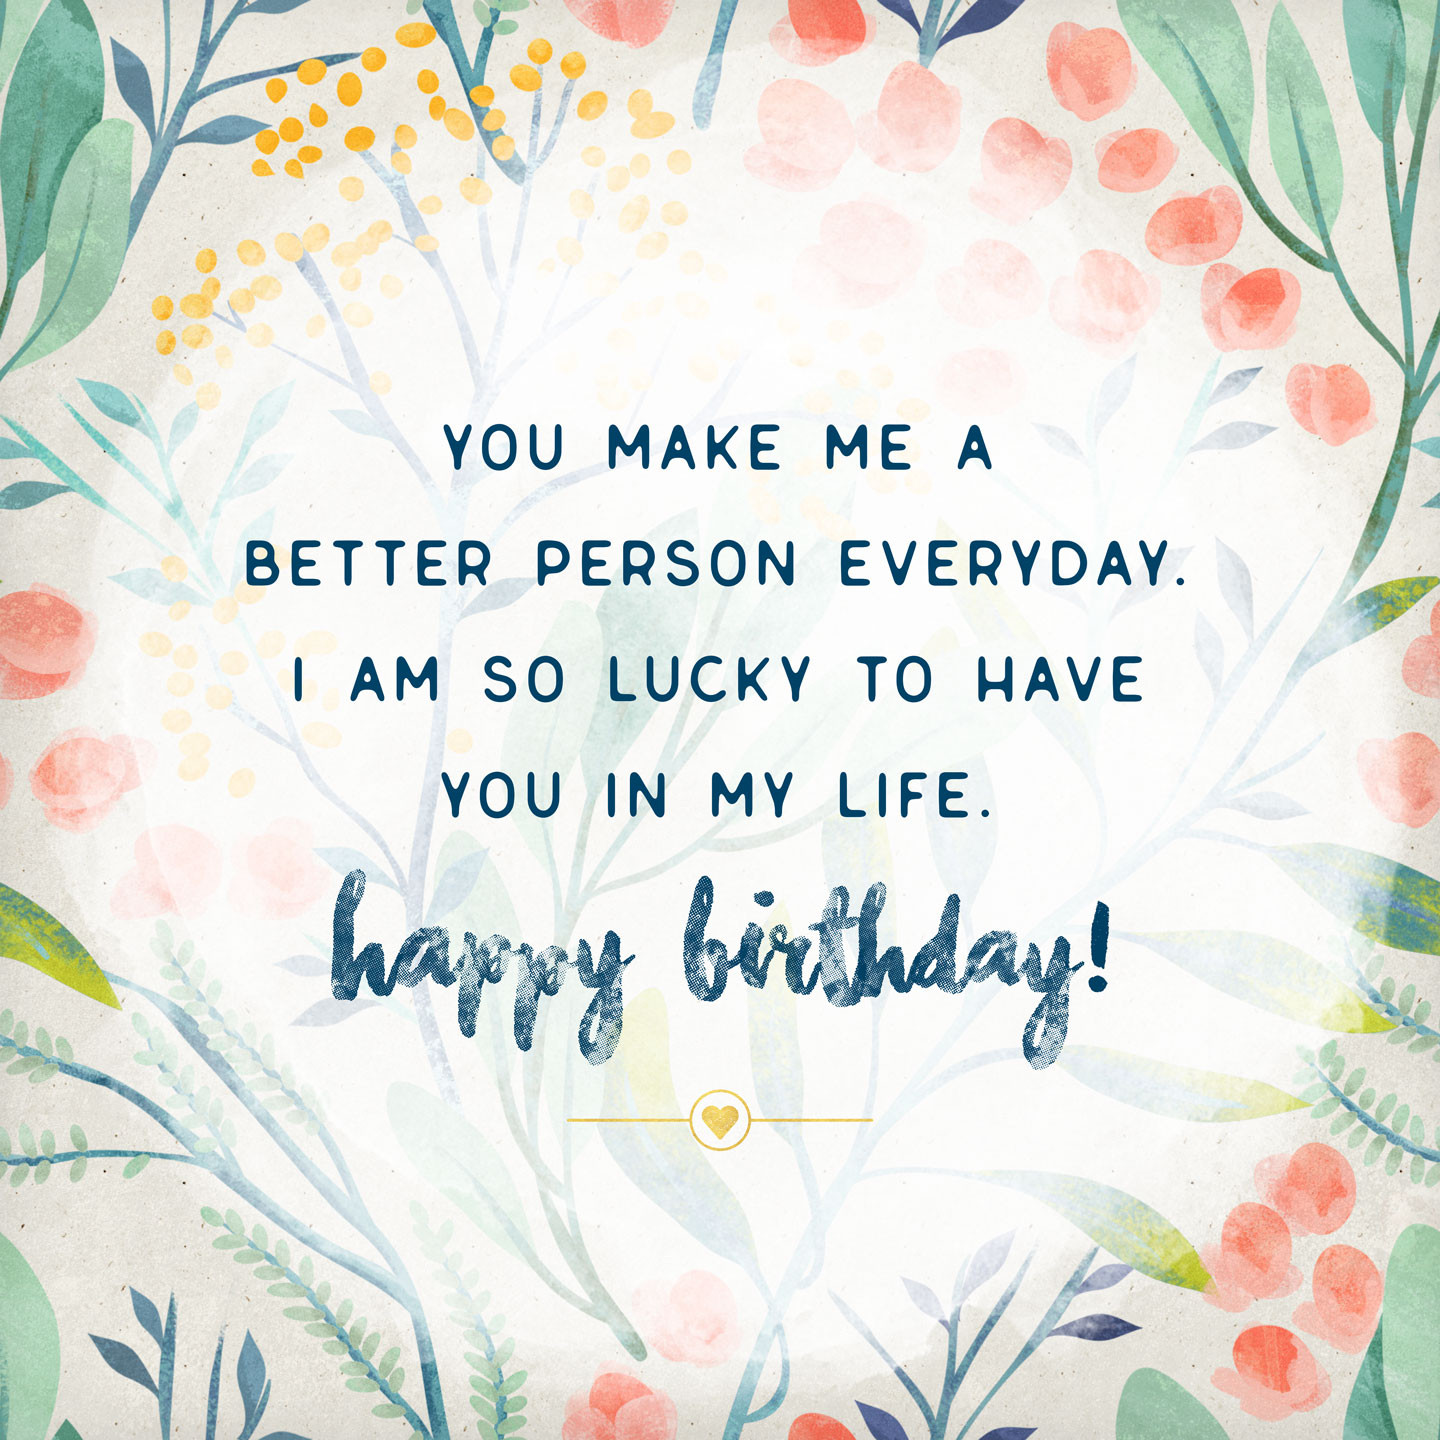 Best ideas about Birthday Card Wishes . Save or Pin What to Write in a Birthday Card 48 Birthday Messages and Now.